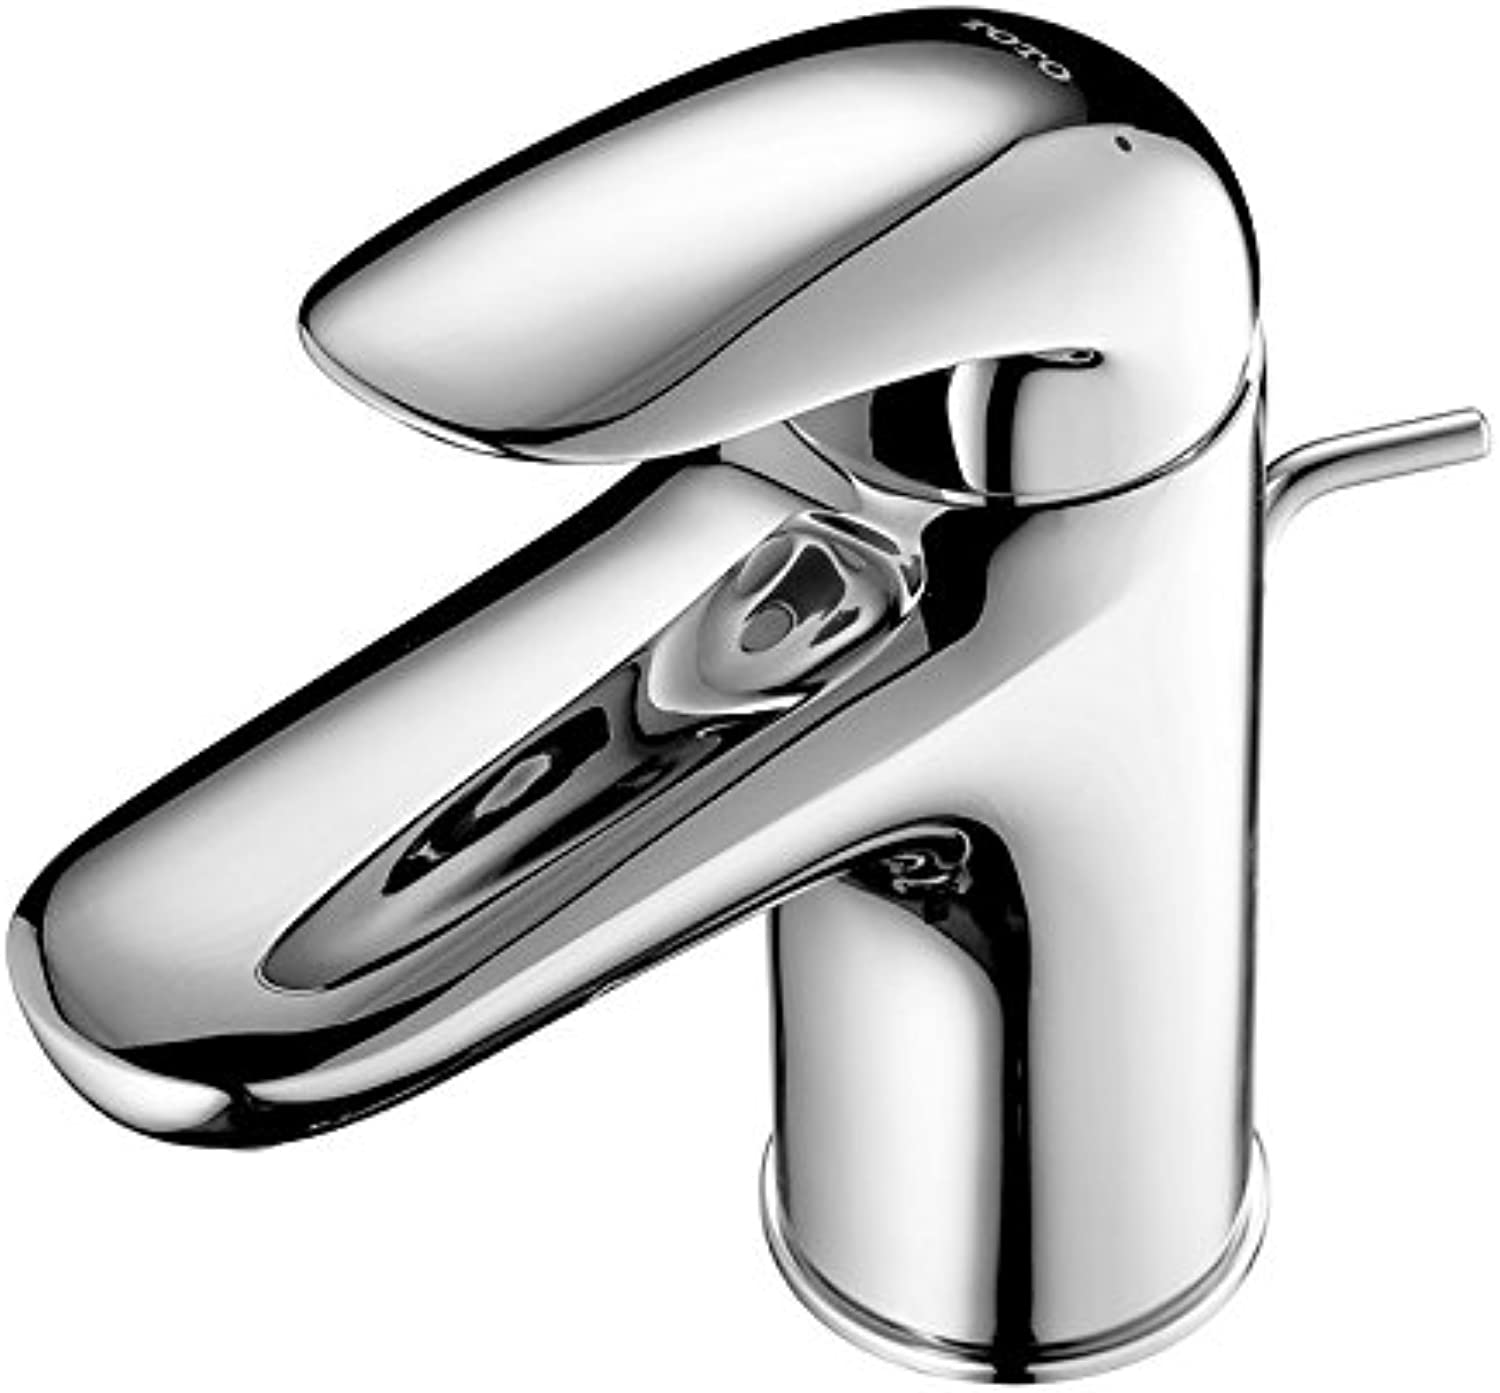 Moned Washbasin, Sitting Basin Type Faucet, Single Hole Single Handle Hot And Cold Faucetquality Assurance Of Modern Simple Luxury, Luxury And Ancient Classic Home Decoration